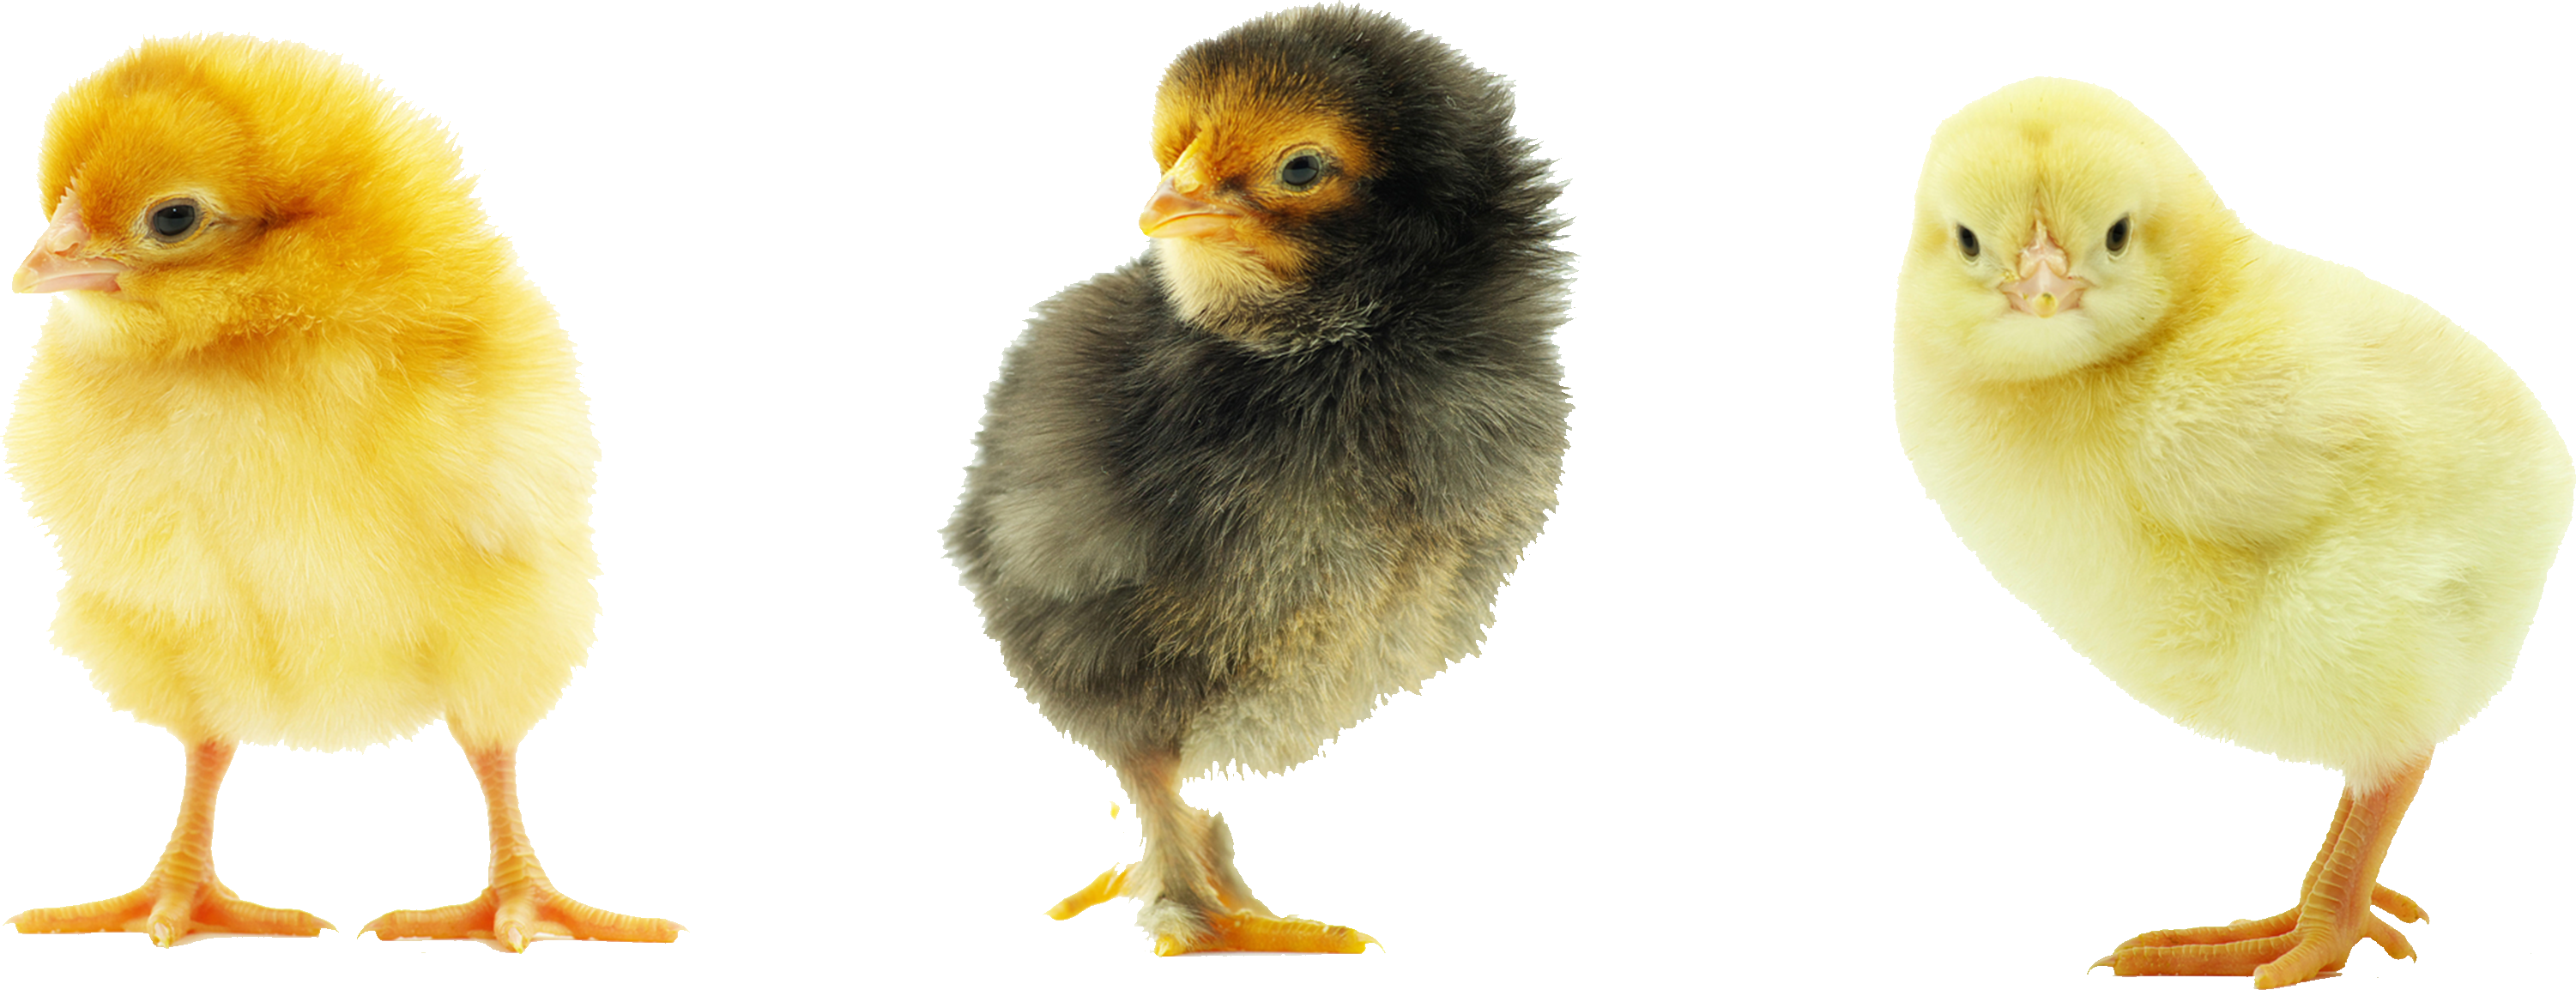 Sweet Chickens Png image #40298